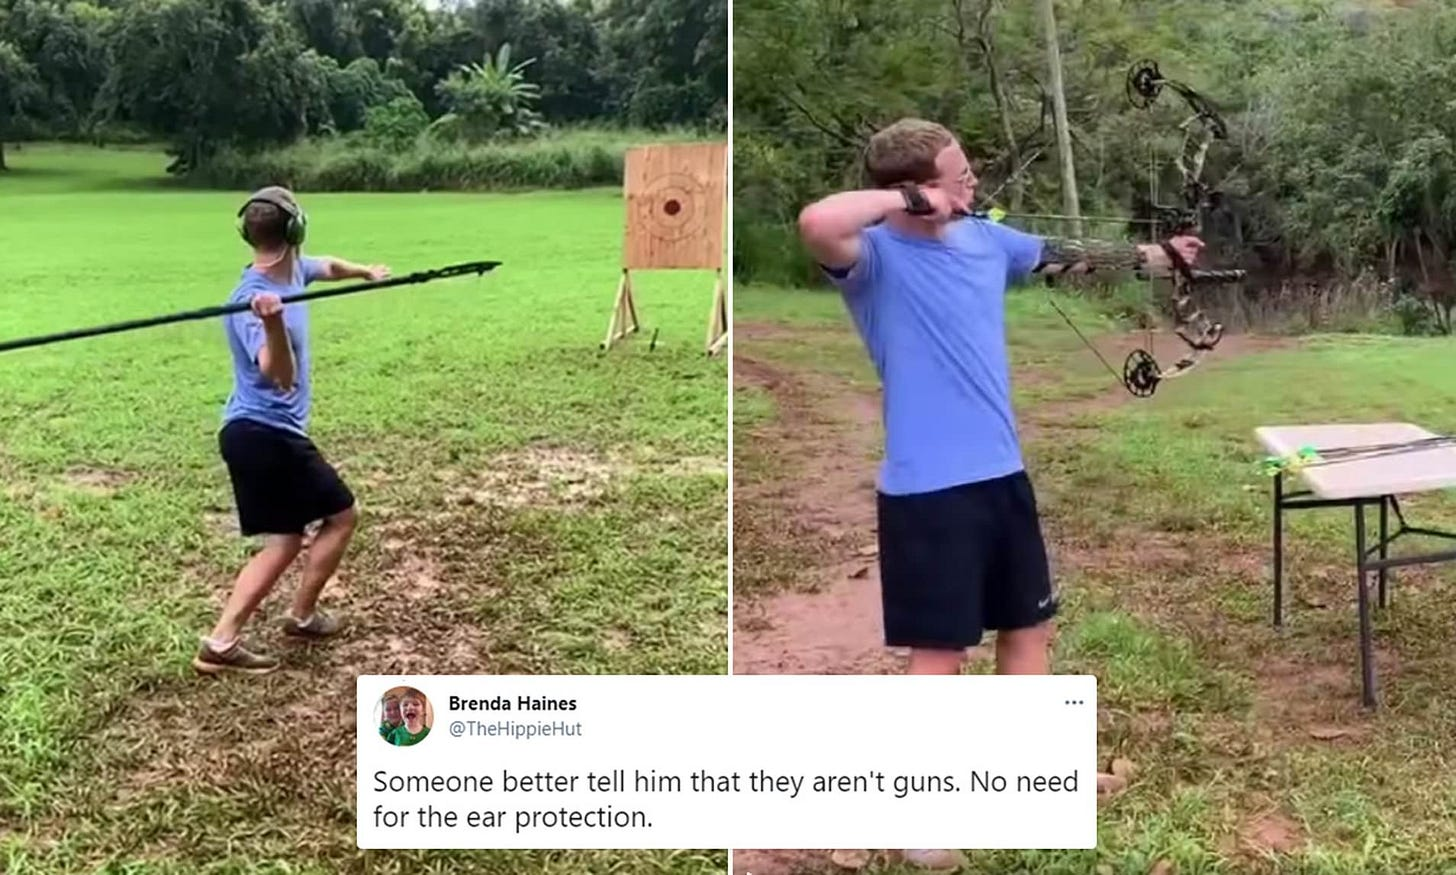 Mark Zuckerberg posts bizarre video of himself throwing spears while  wearing ear protectors | Daily Mail Online